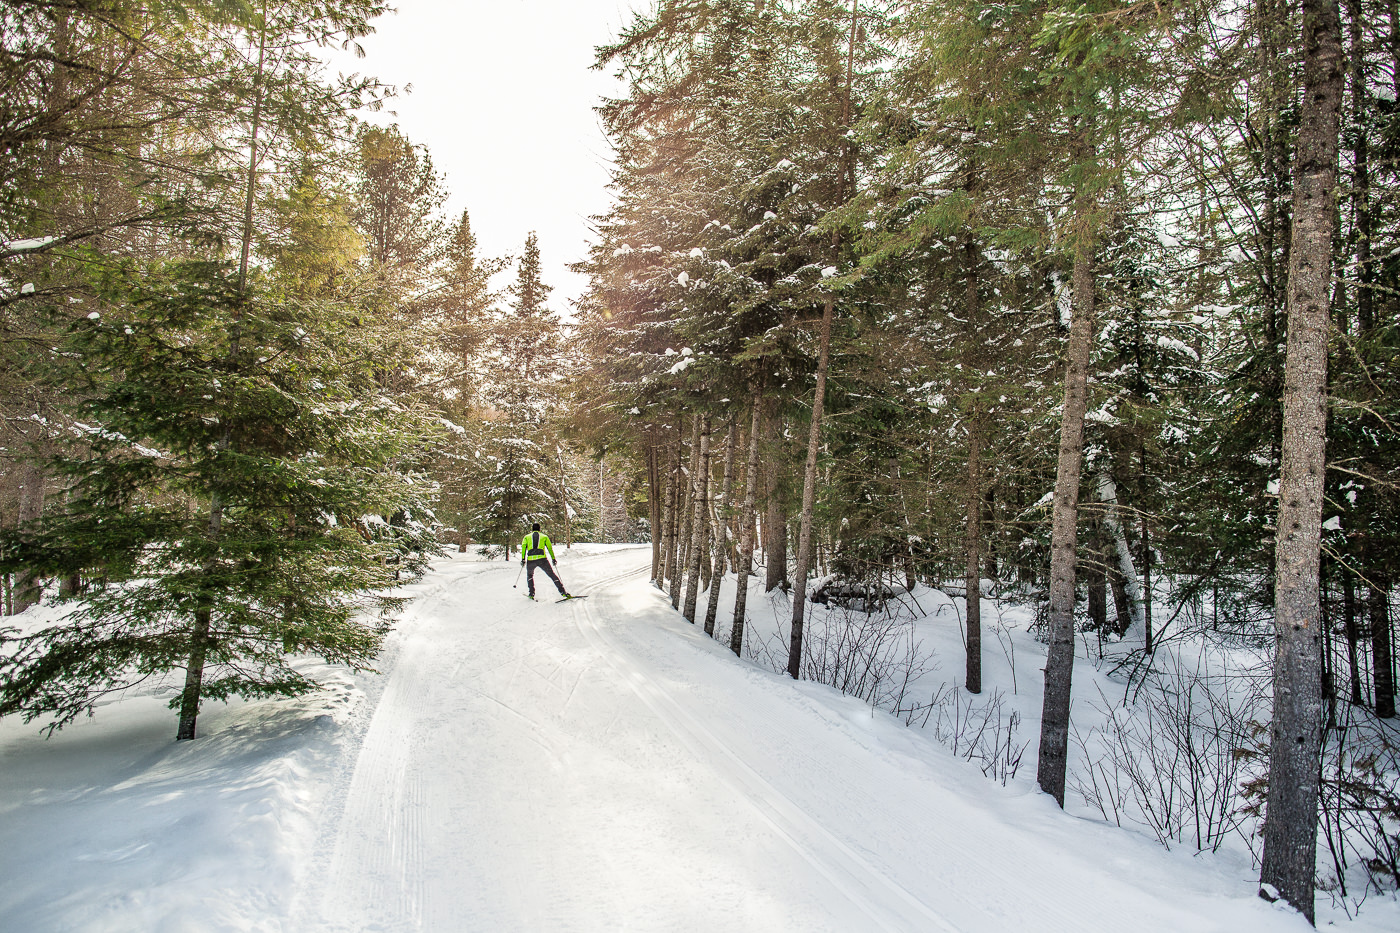 photo commercial ski de fond swix canada performance foret hiver